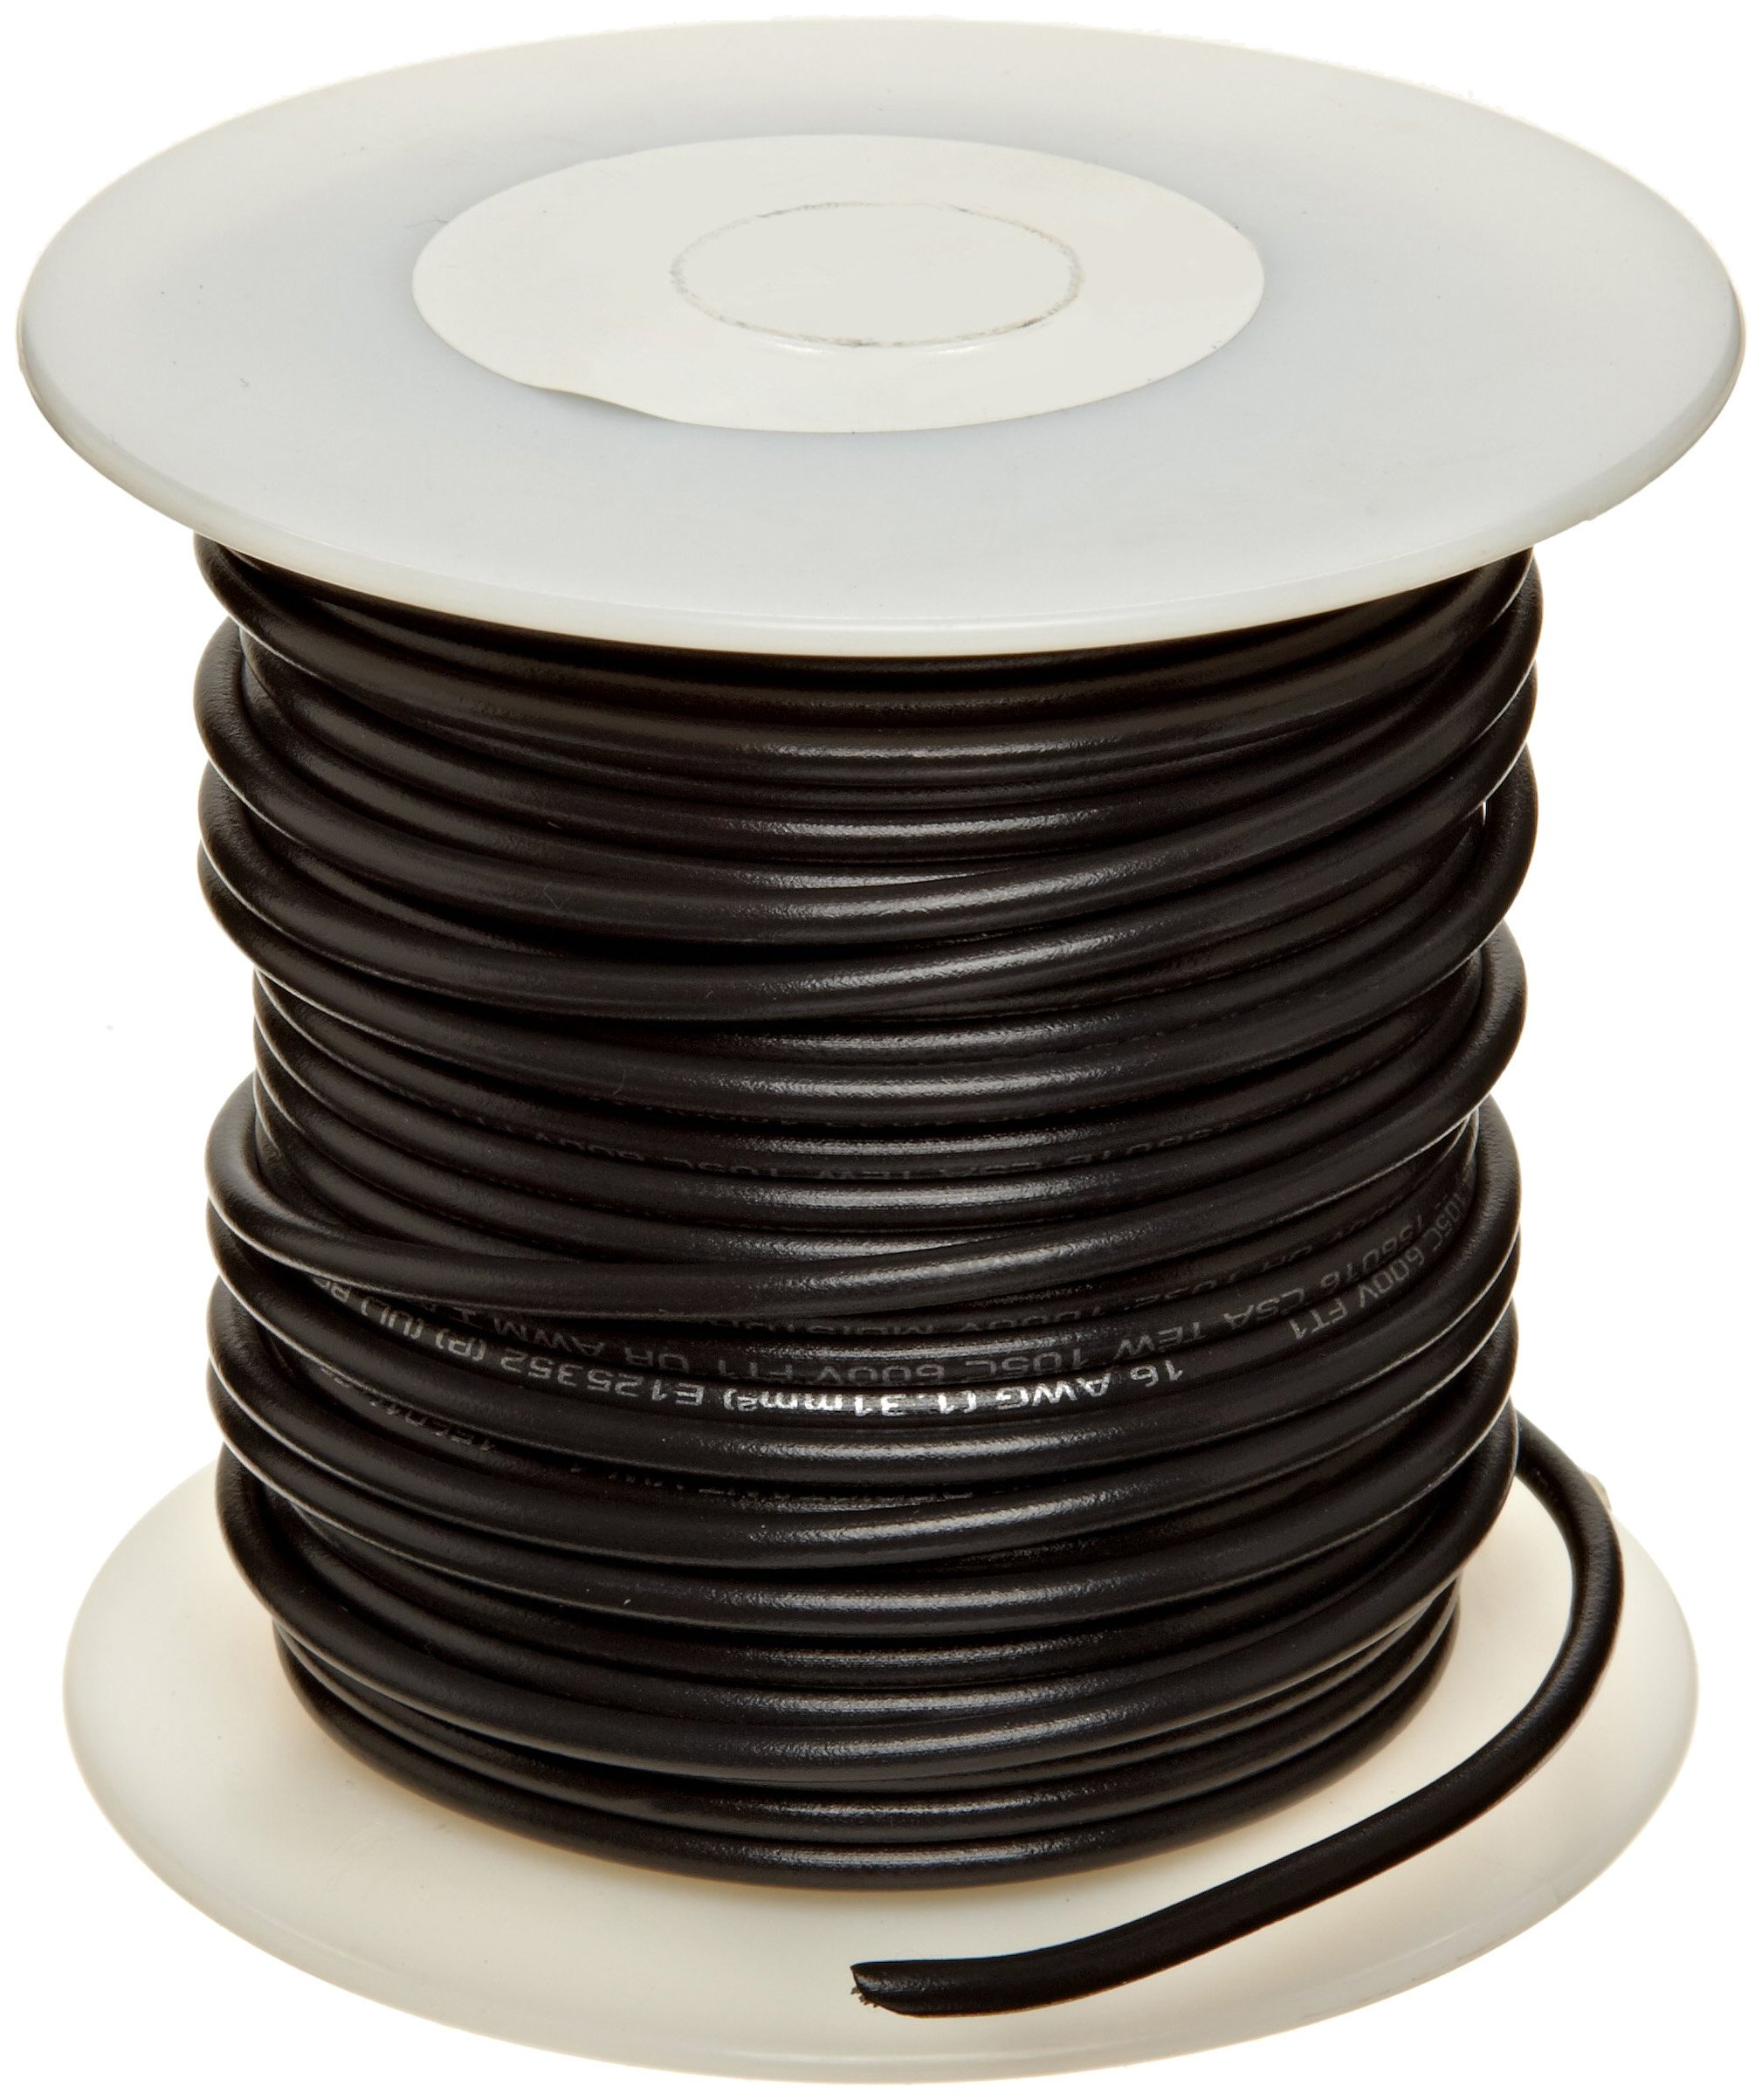 UL1015 Commercial Copper Wire, Bright, Black, 12 AWG, 0.0808'' Diameter, 100' Length (Pack of 1) by Small Parts